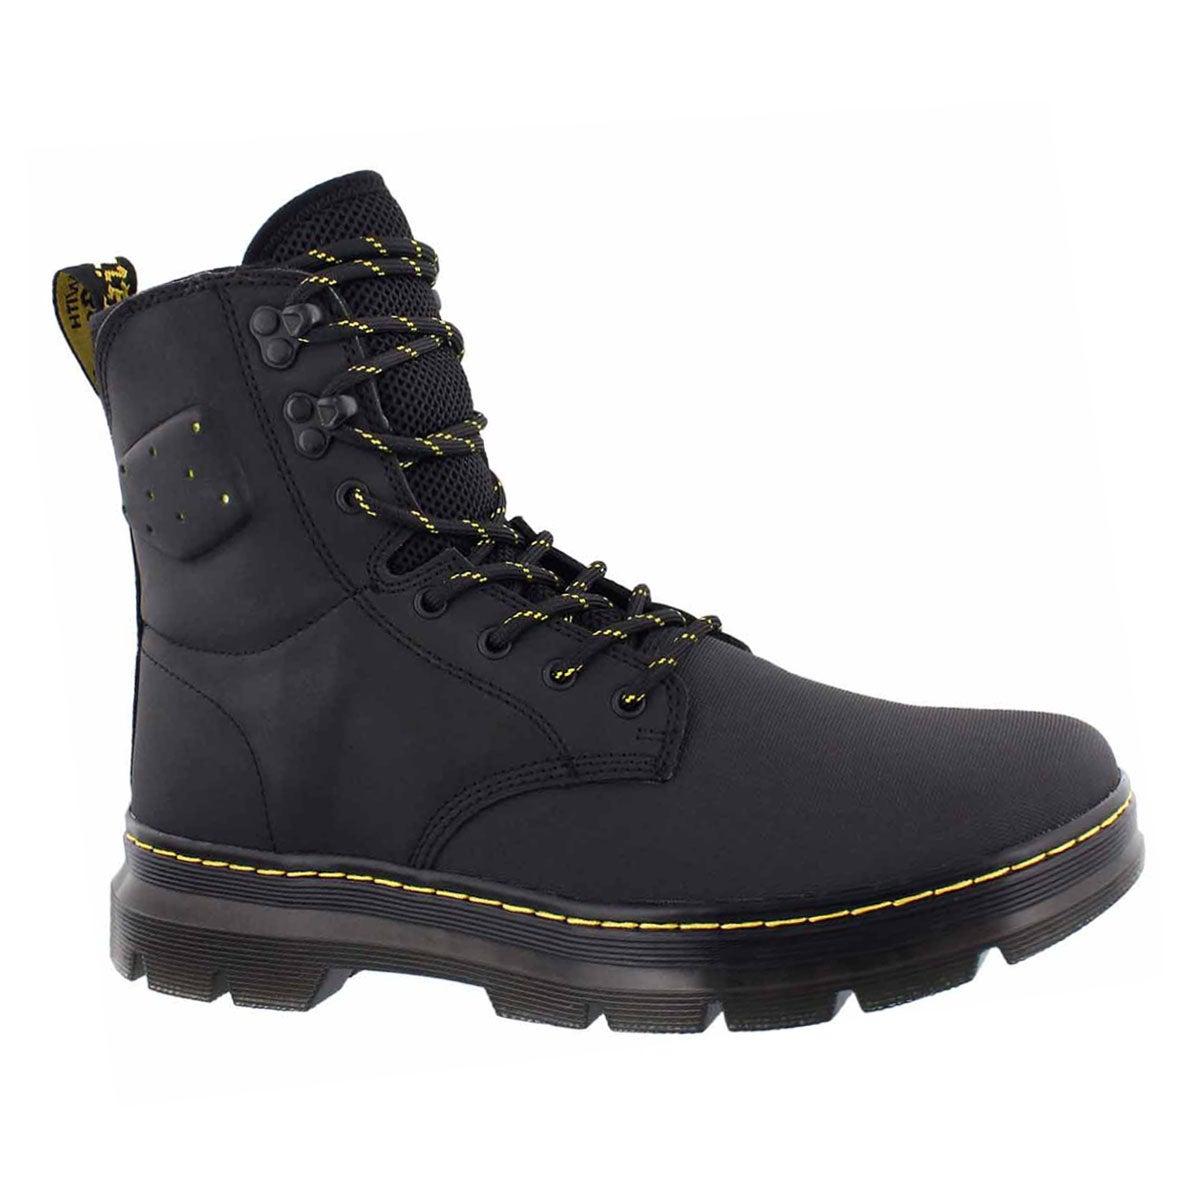 Men's QUINTON black combat boots